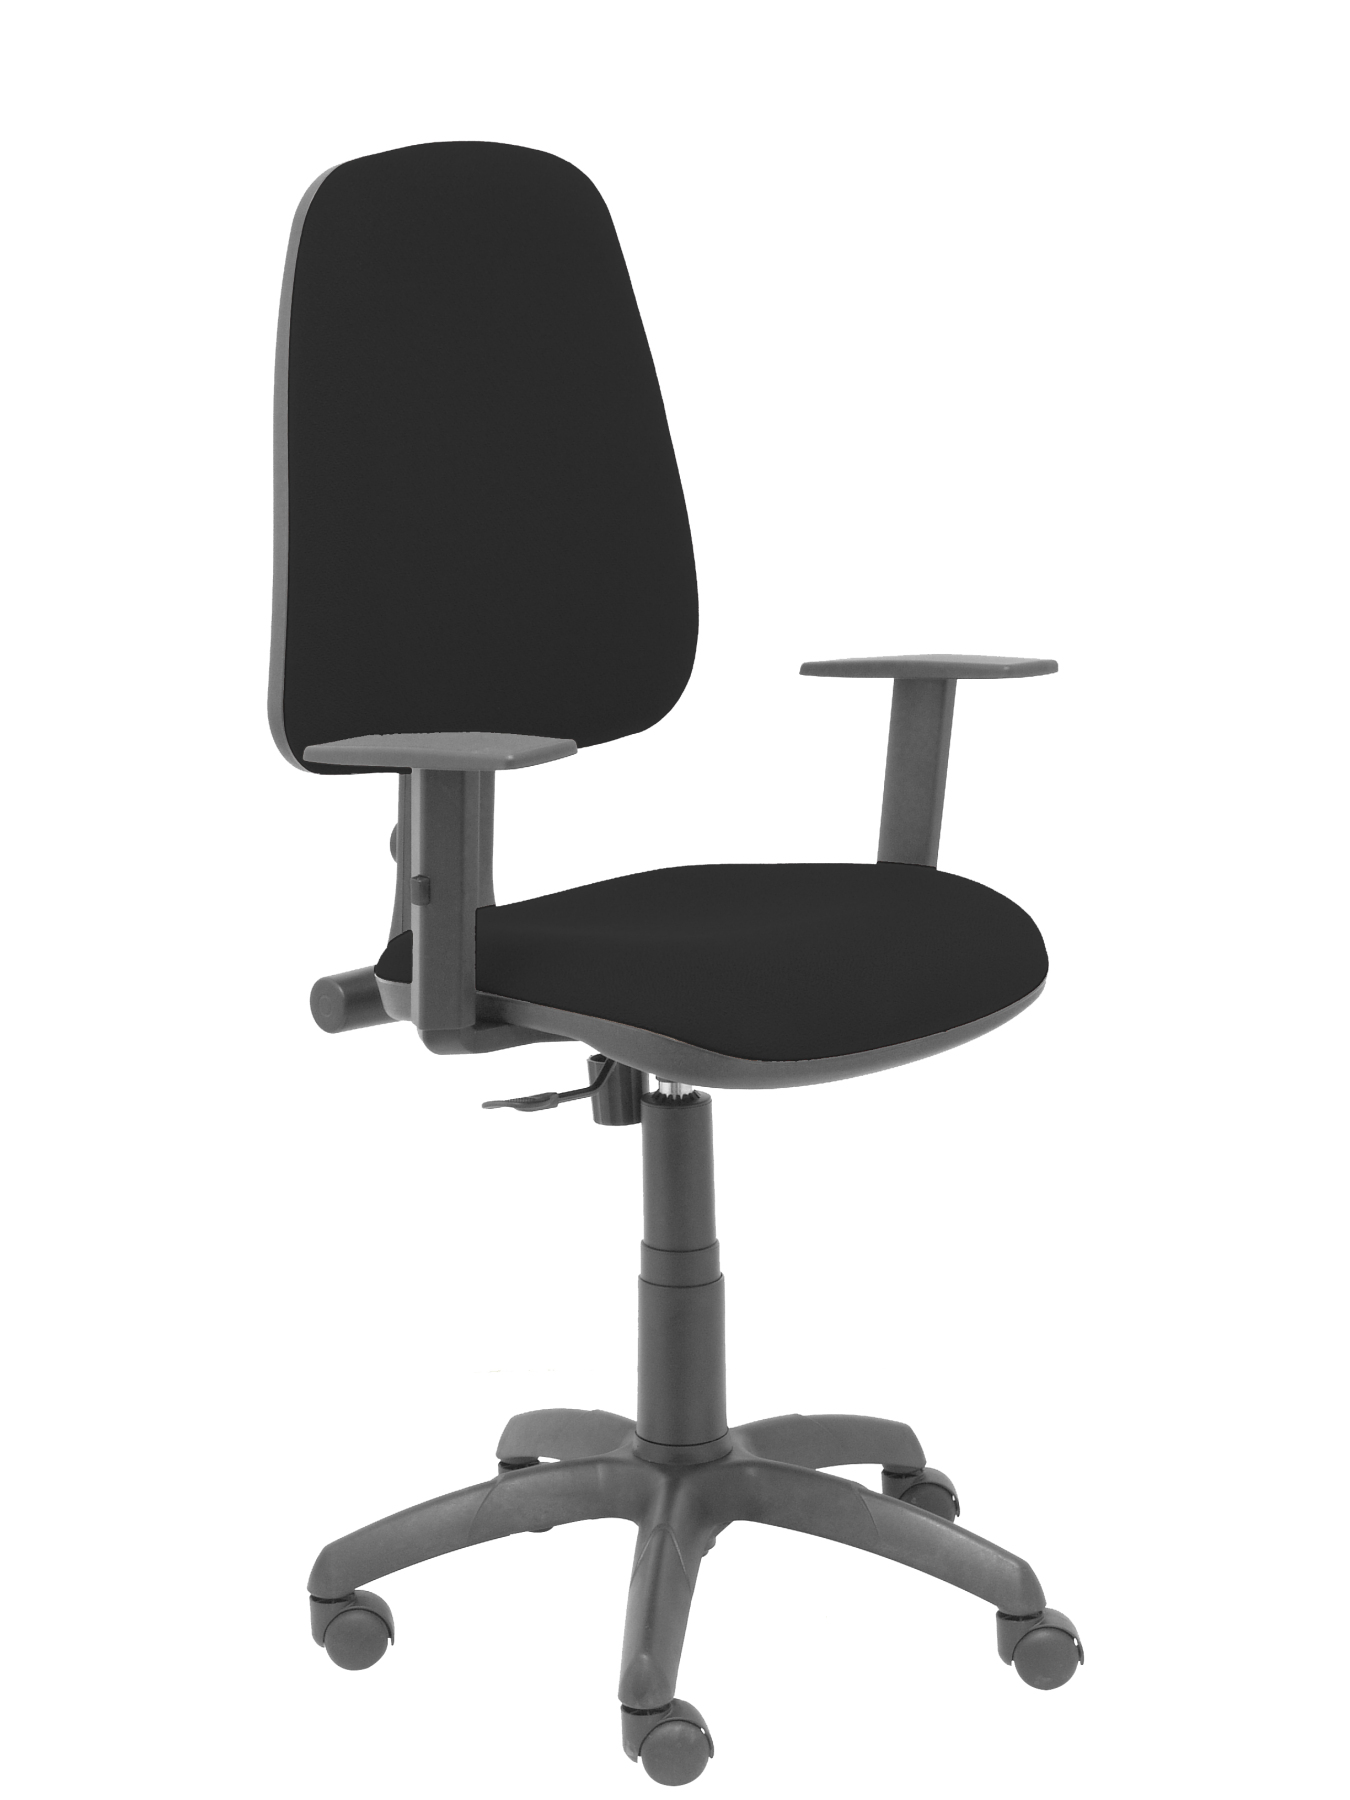 Office Chair With Mechanism Permanent Contact And Adjustable Height-Seat And Backrest Cushion Fabric BAL